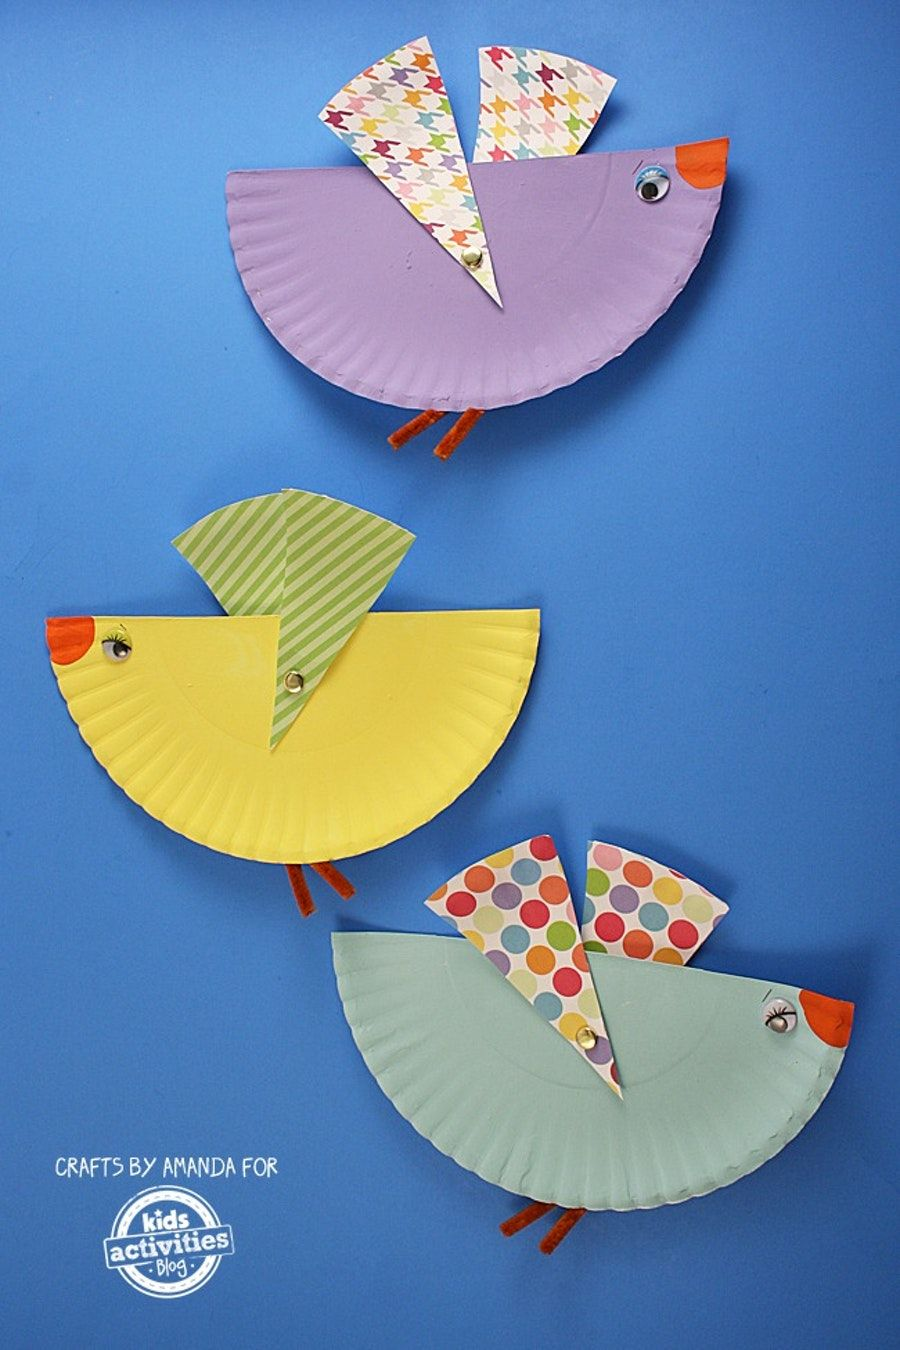 PAPER PLATE BIRDS WITH MOVABLE WINGS - Kids Activities & PAPER PLATE BIRDS WITH MOVABLE WINGS - Kids Activities | Bsparky ...